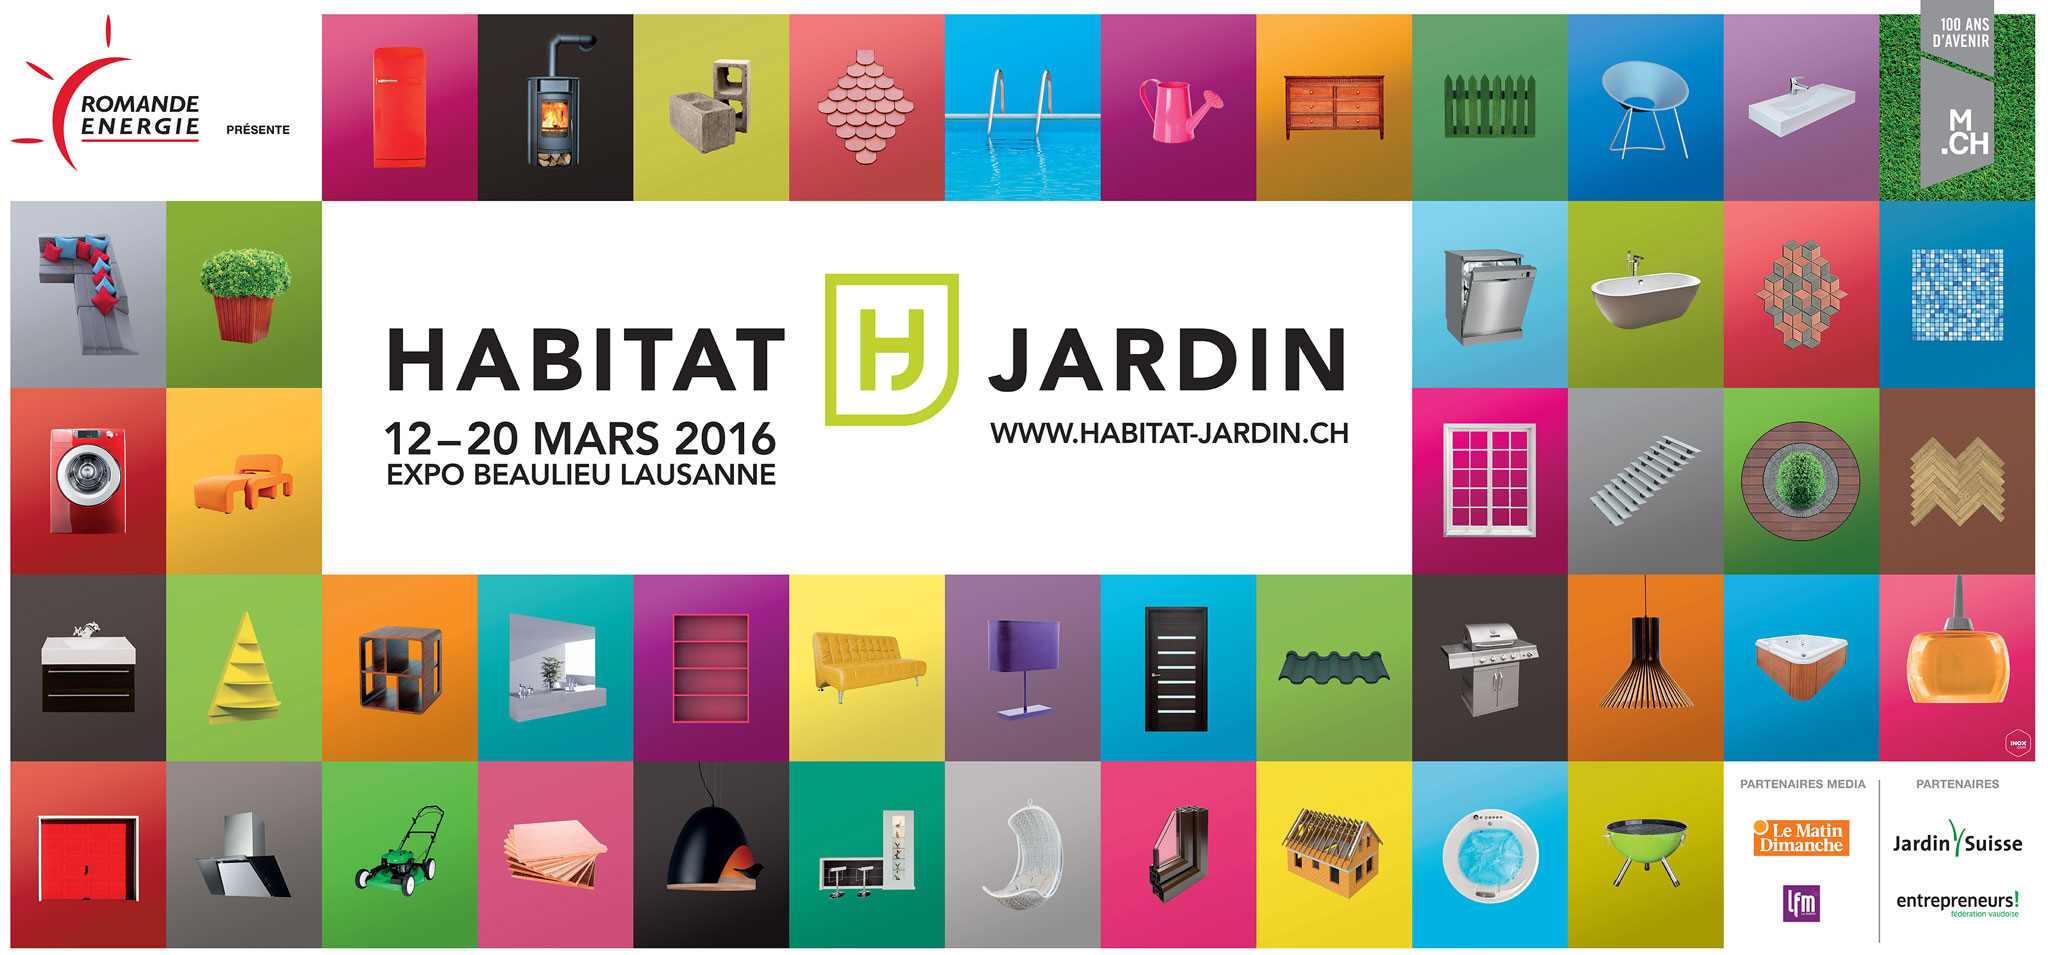 Salon habitat jardin 2016 lausanne lamatec for Salon du jardinage 2016